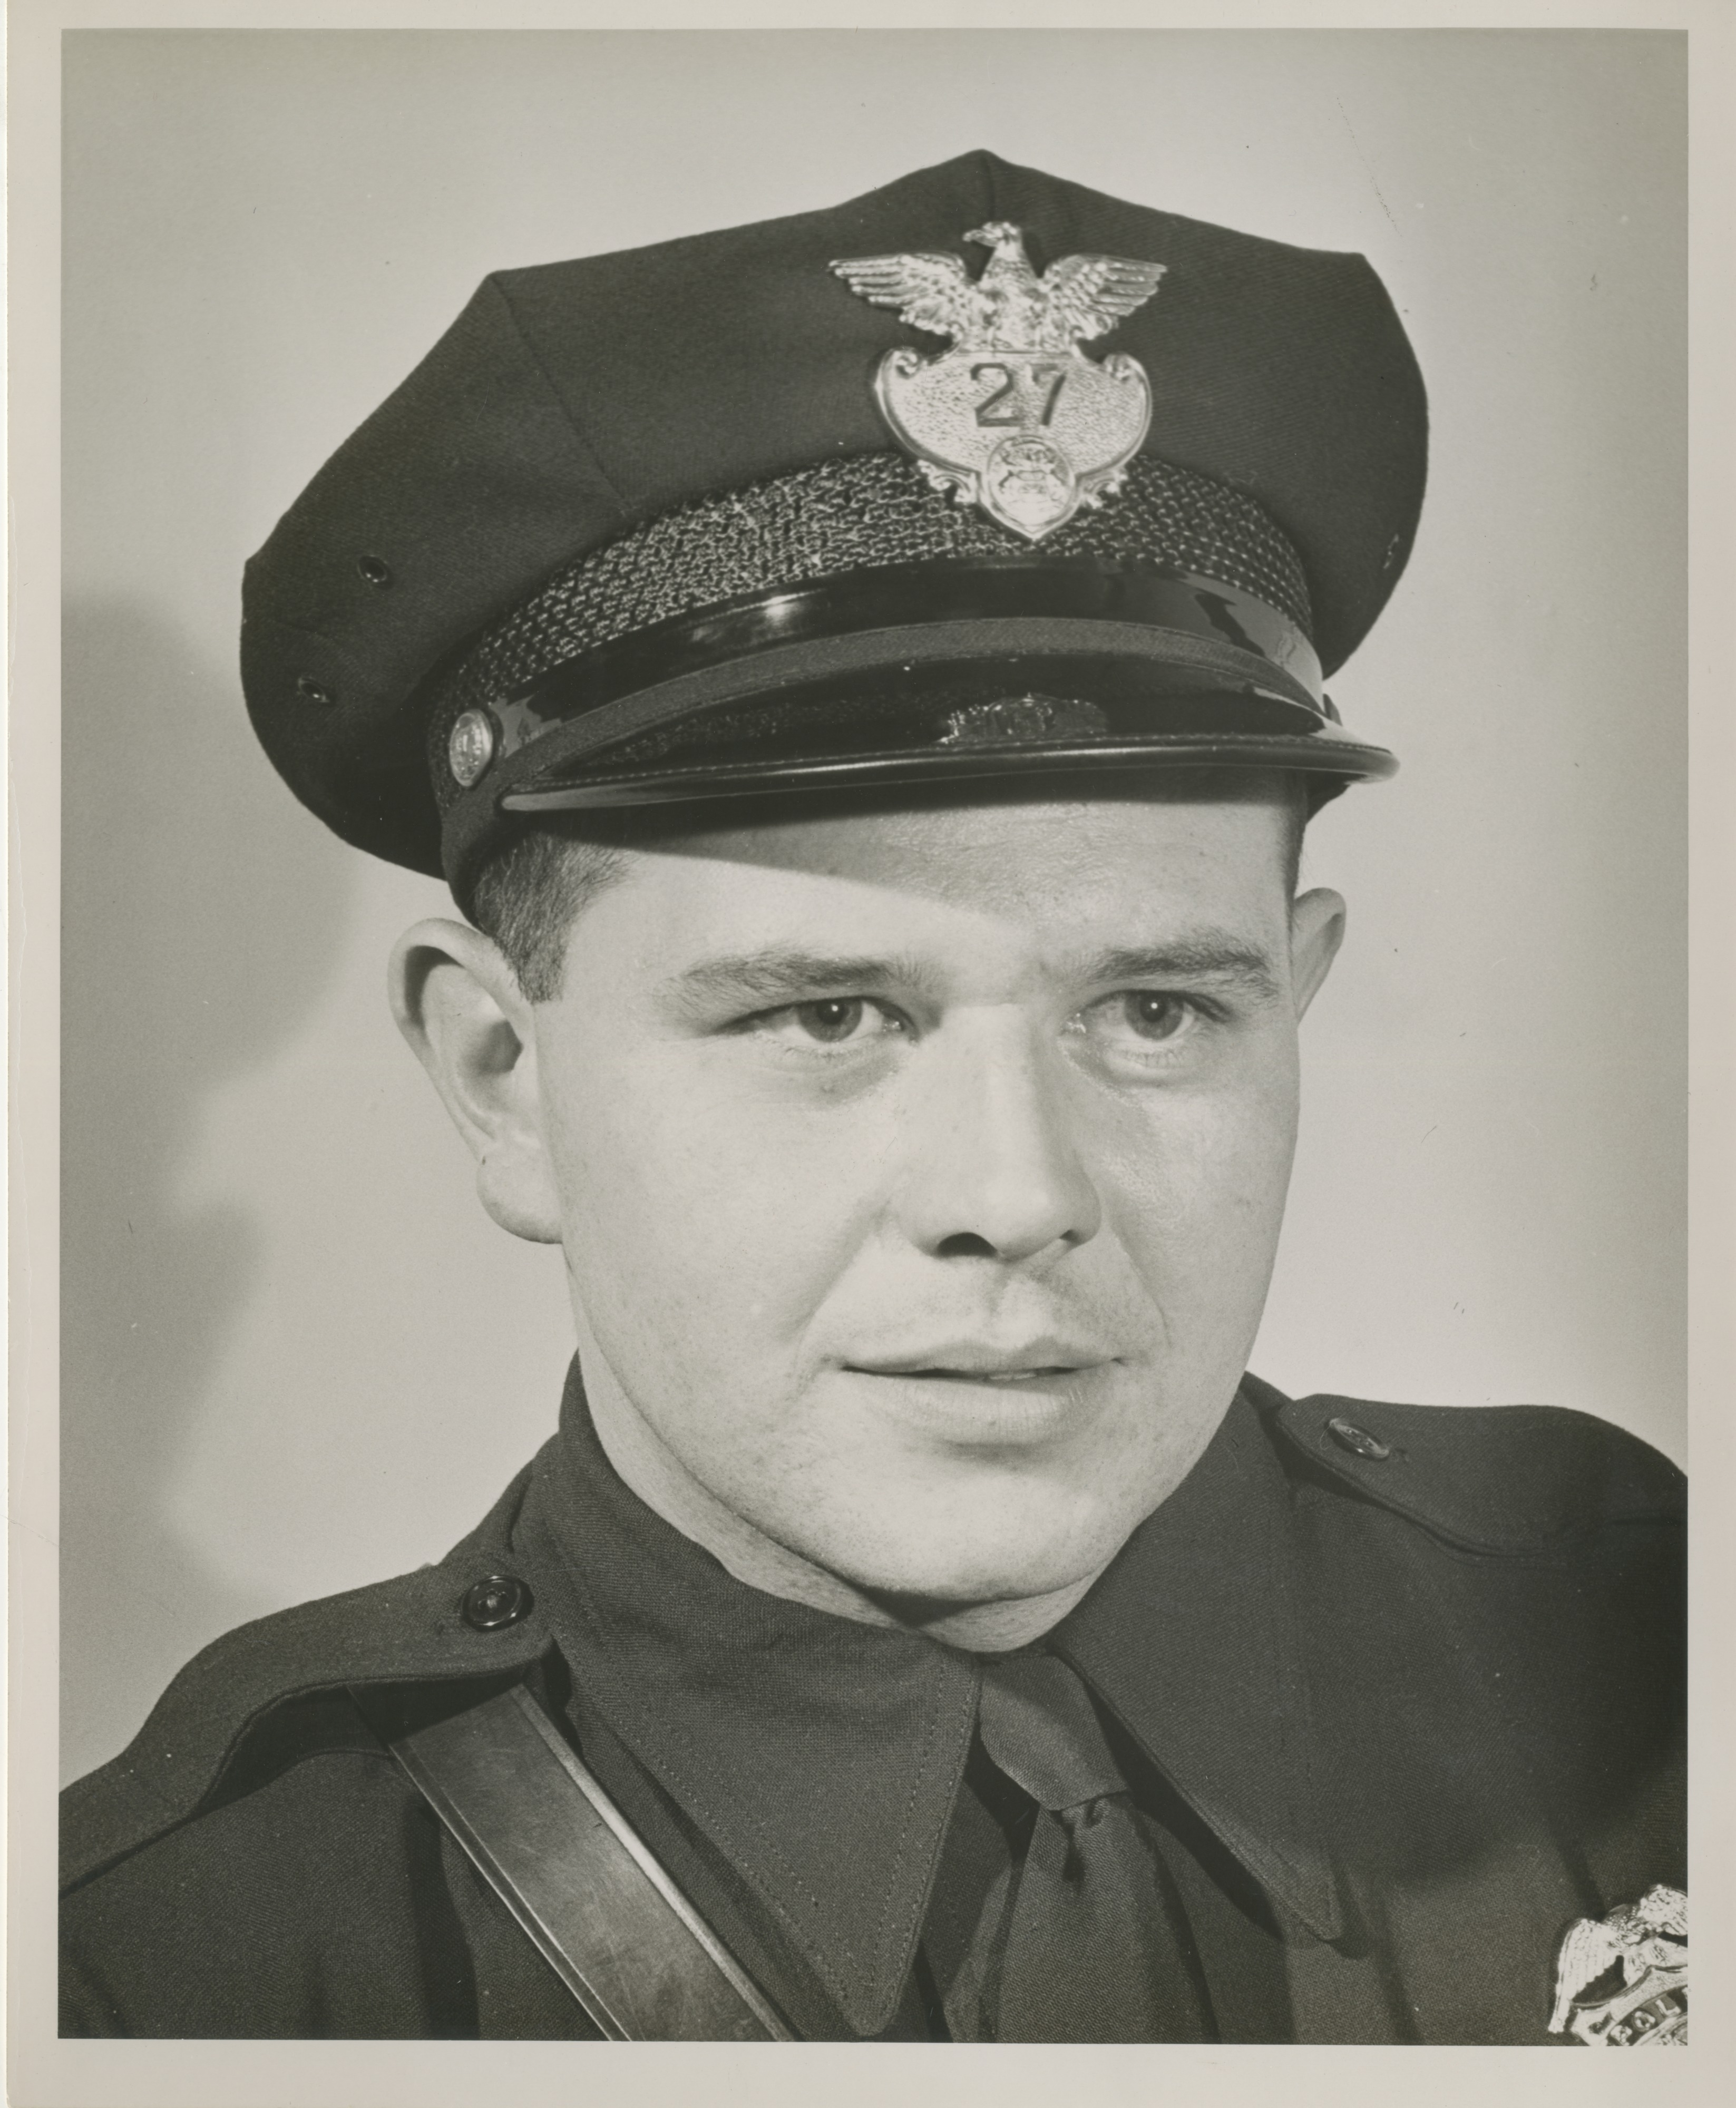 Michael Katopol - Newly Appointed Ann Arbor Police Officer, July 1946 image